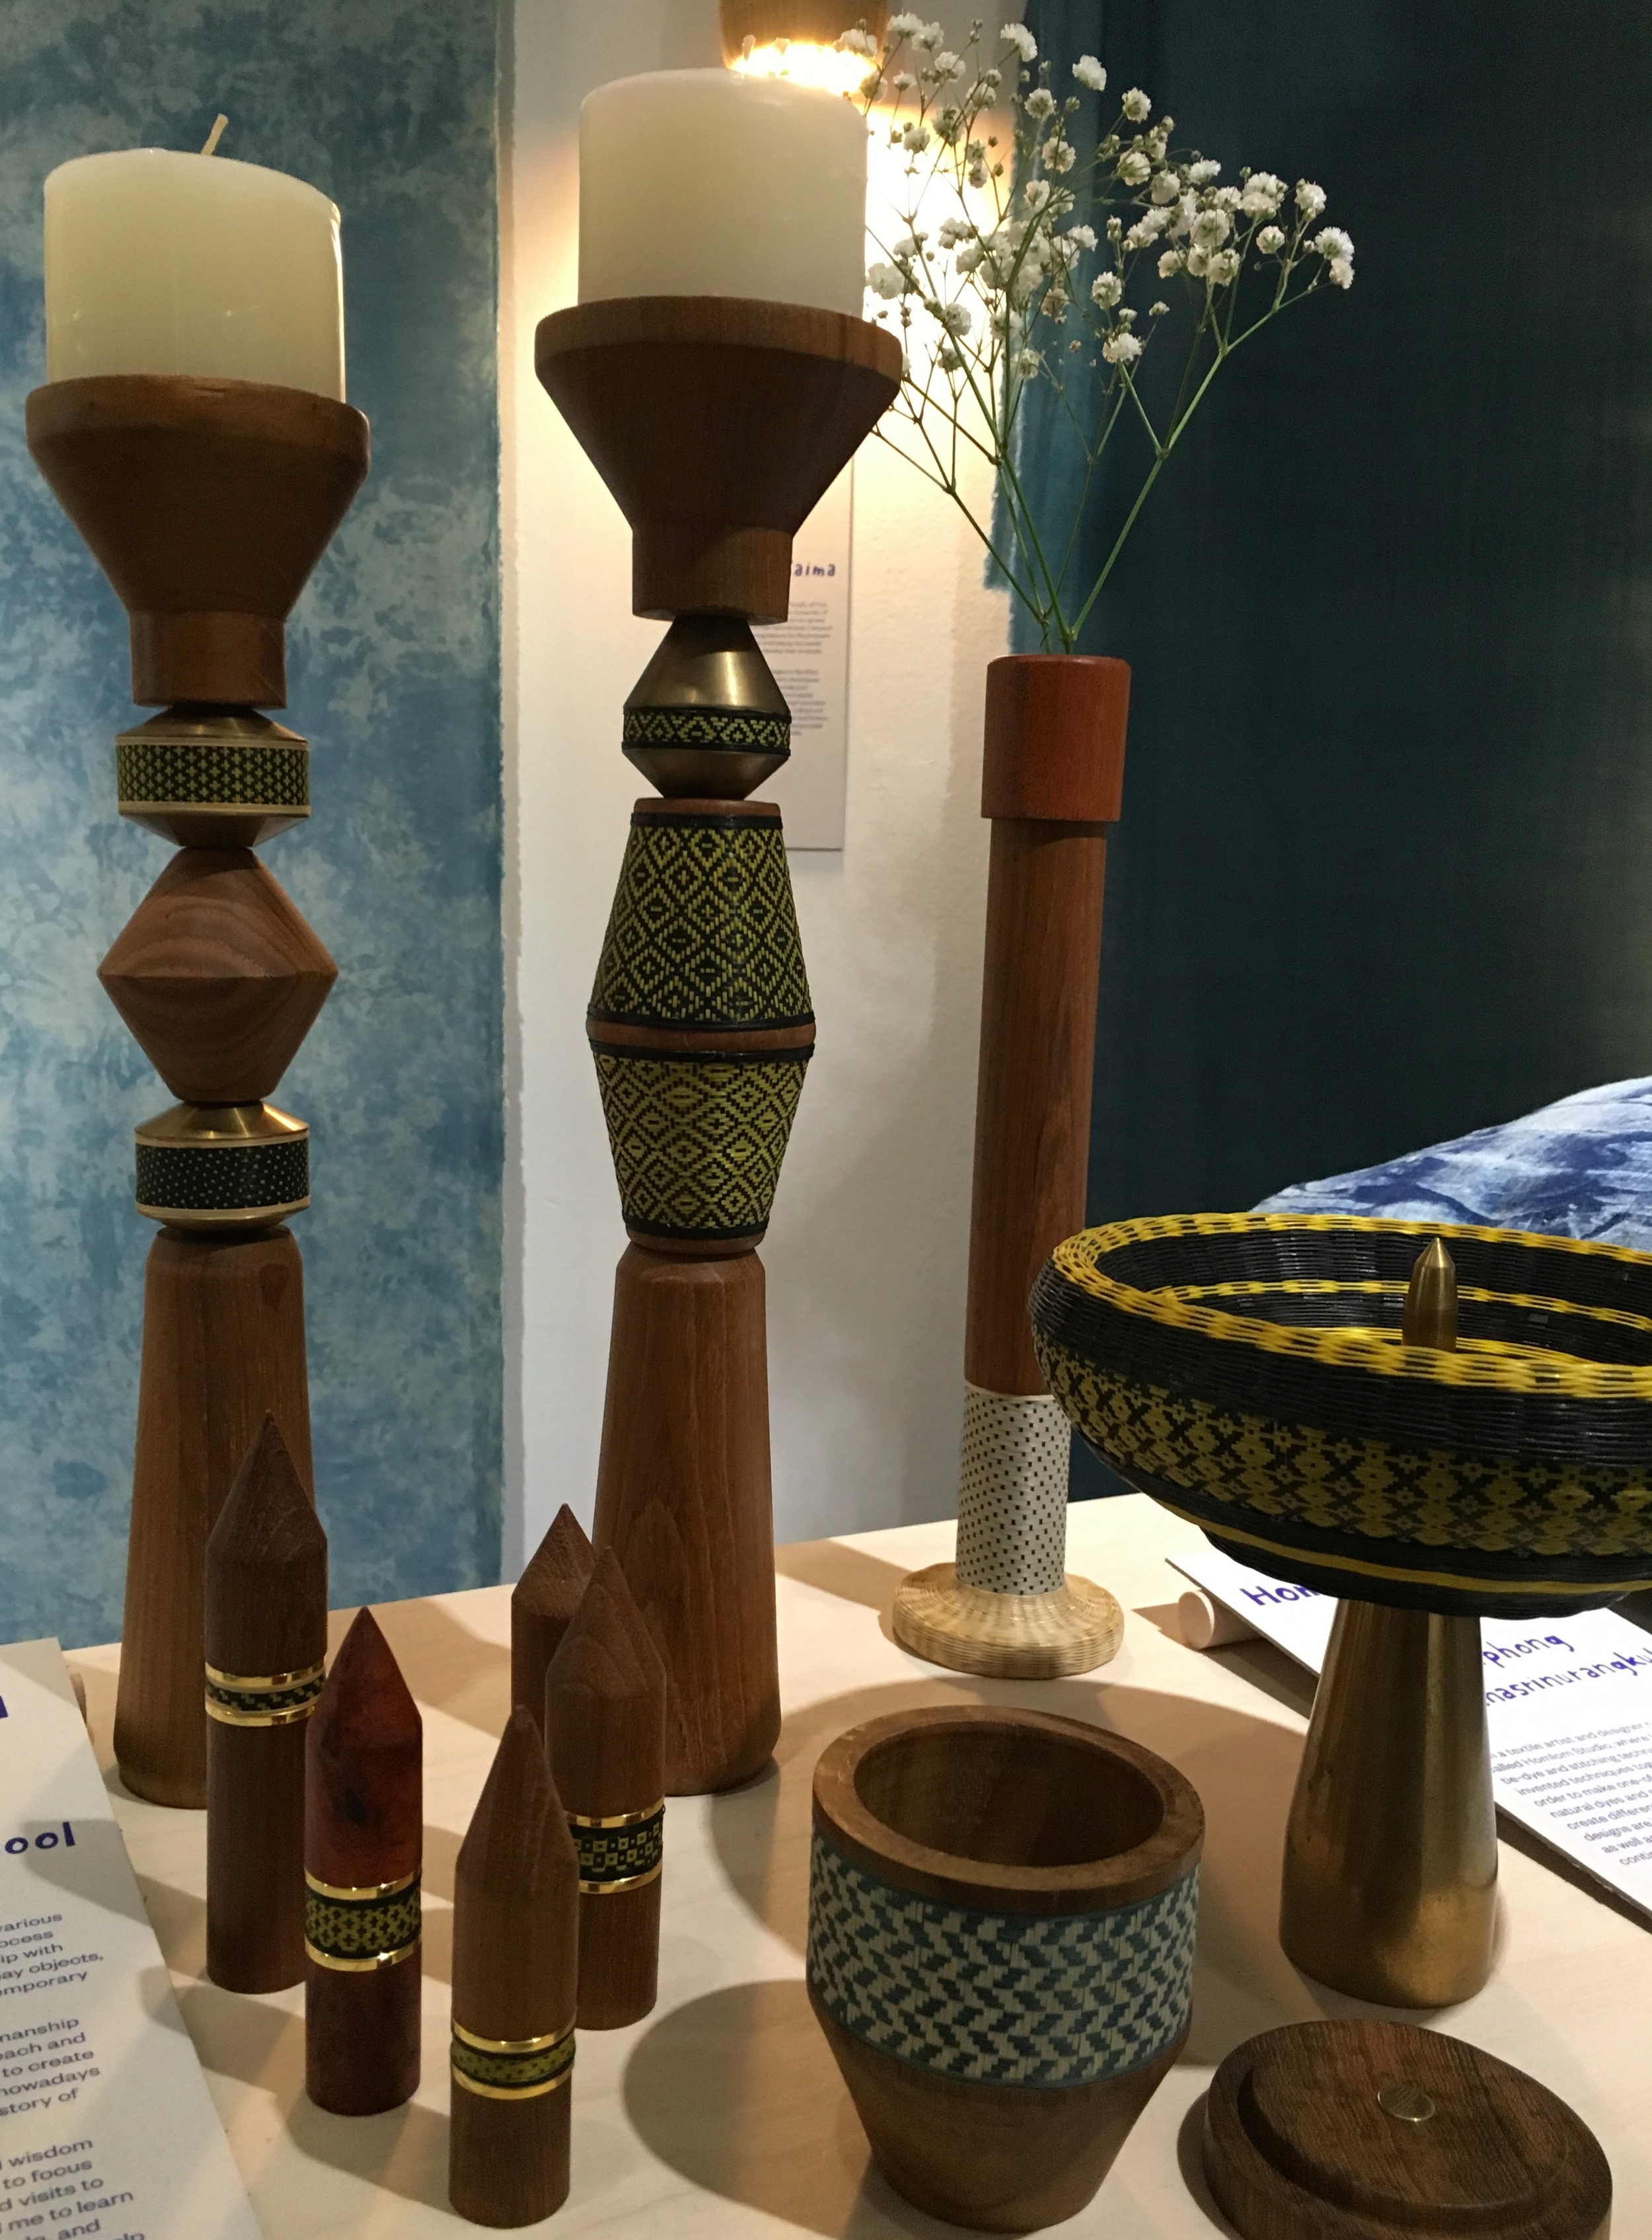 Pillar Candlesticks, rings and vessels from Thai designer-makers  Patapian .  Combining Thai wicker weaving techniques with other local craft skills.